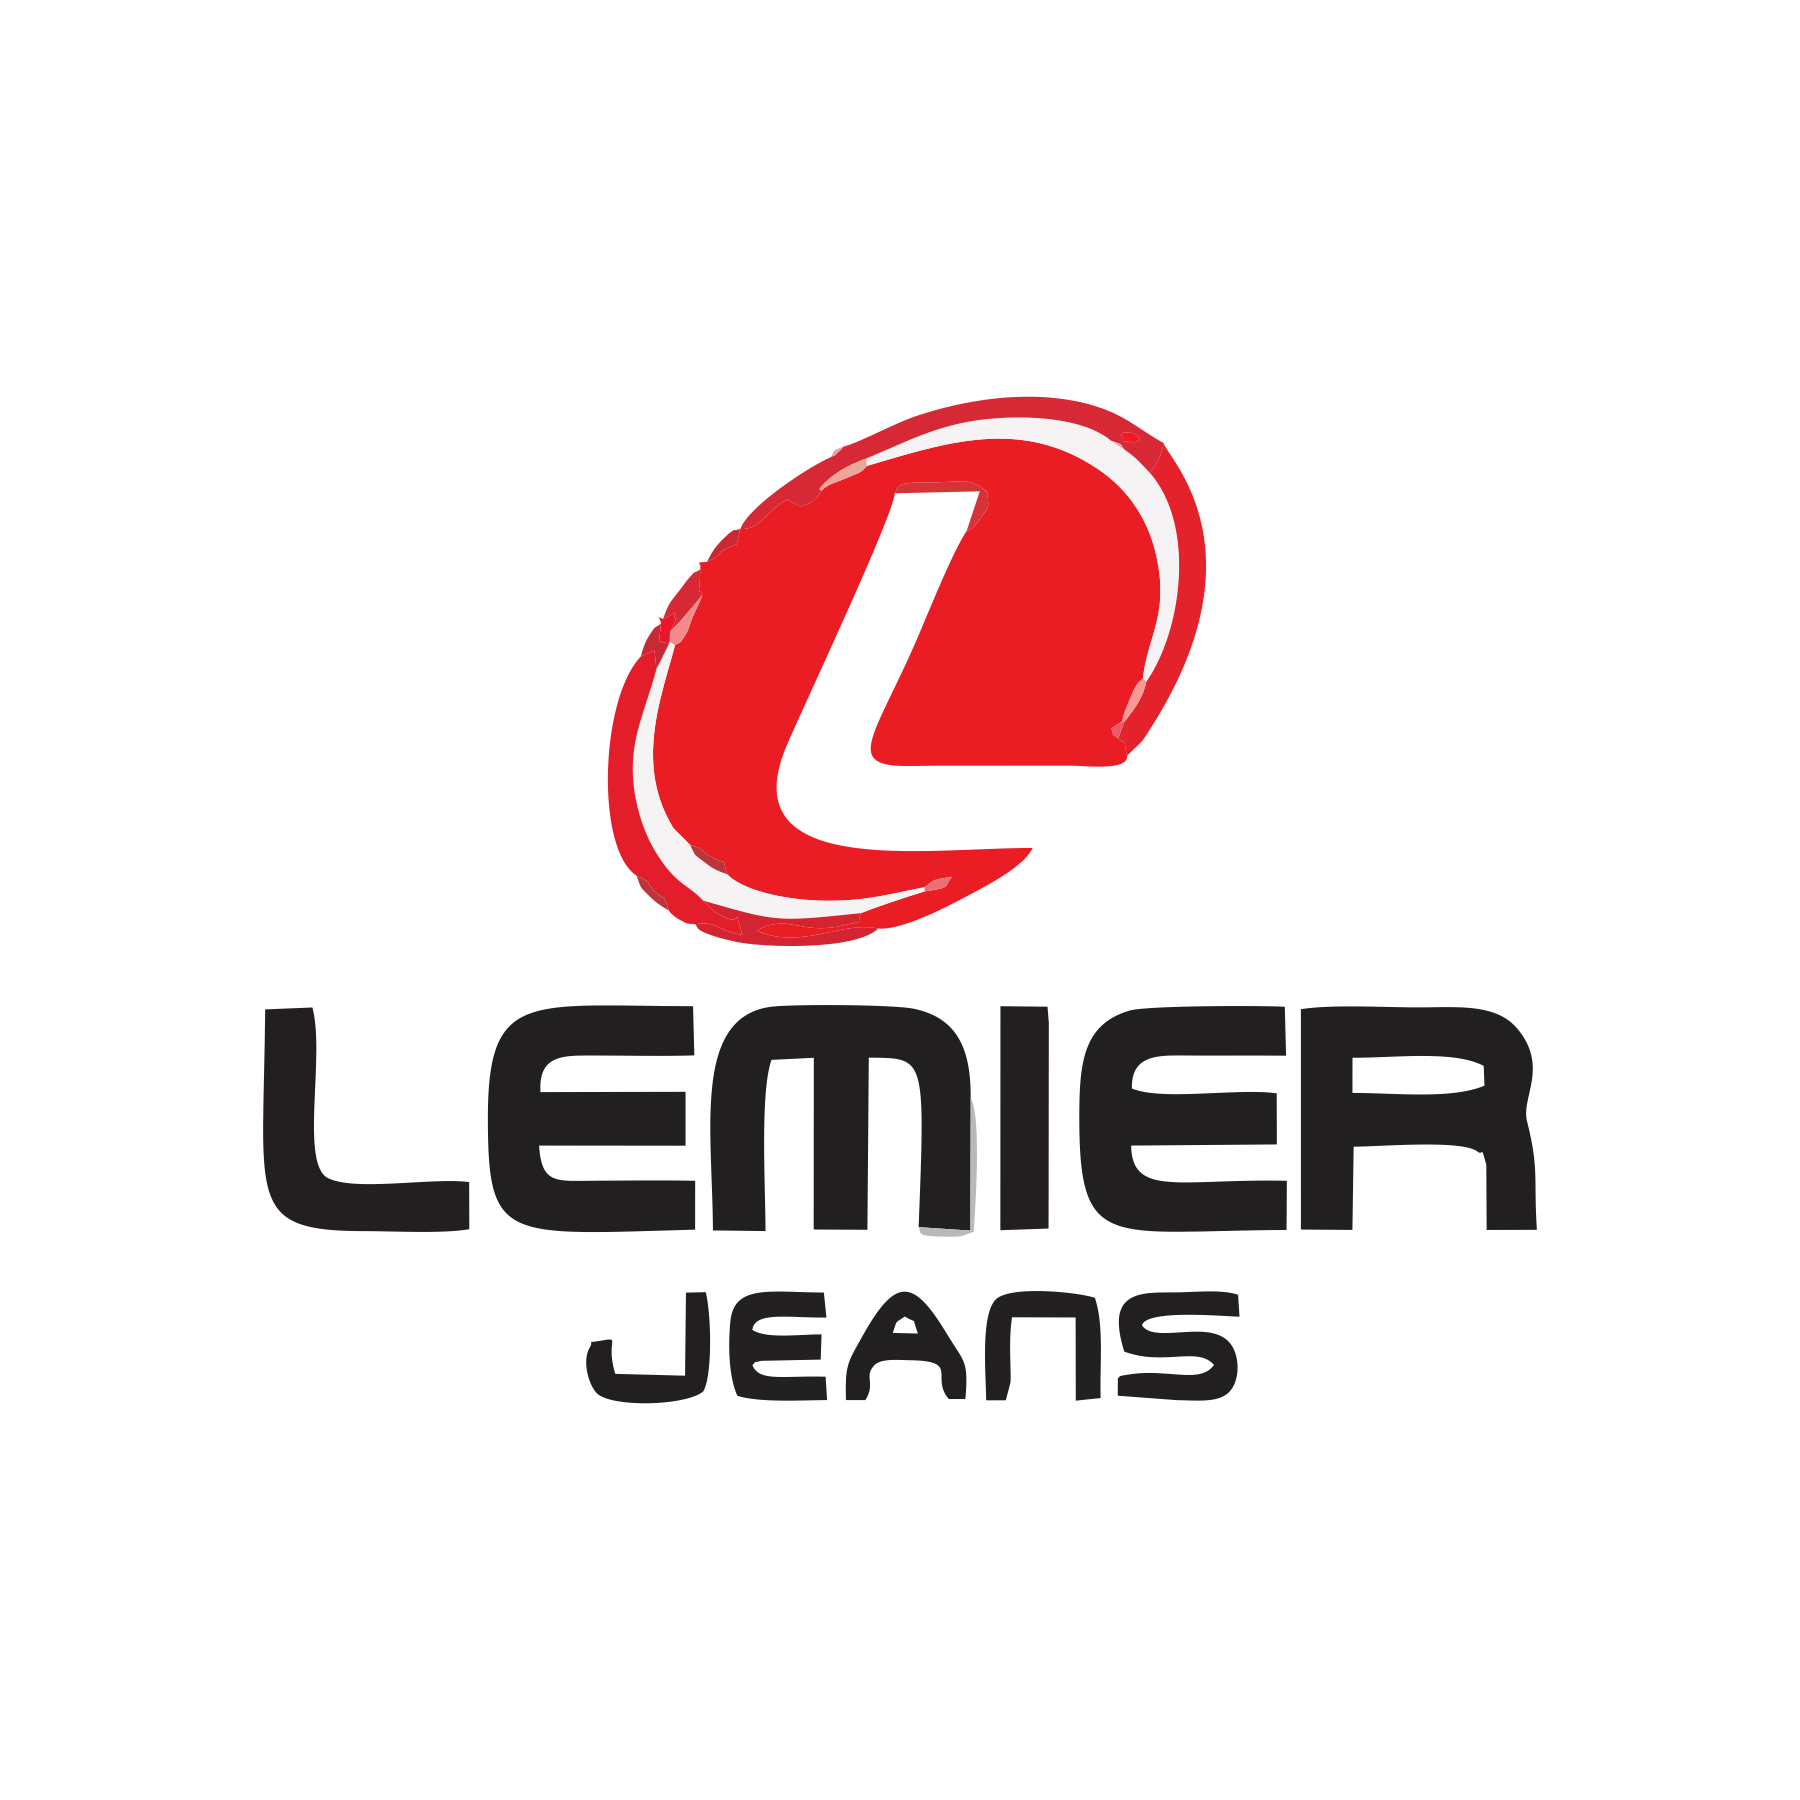 Lemier Jeans : Brand Short Description Type Here.